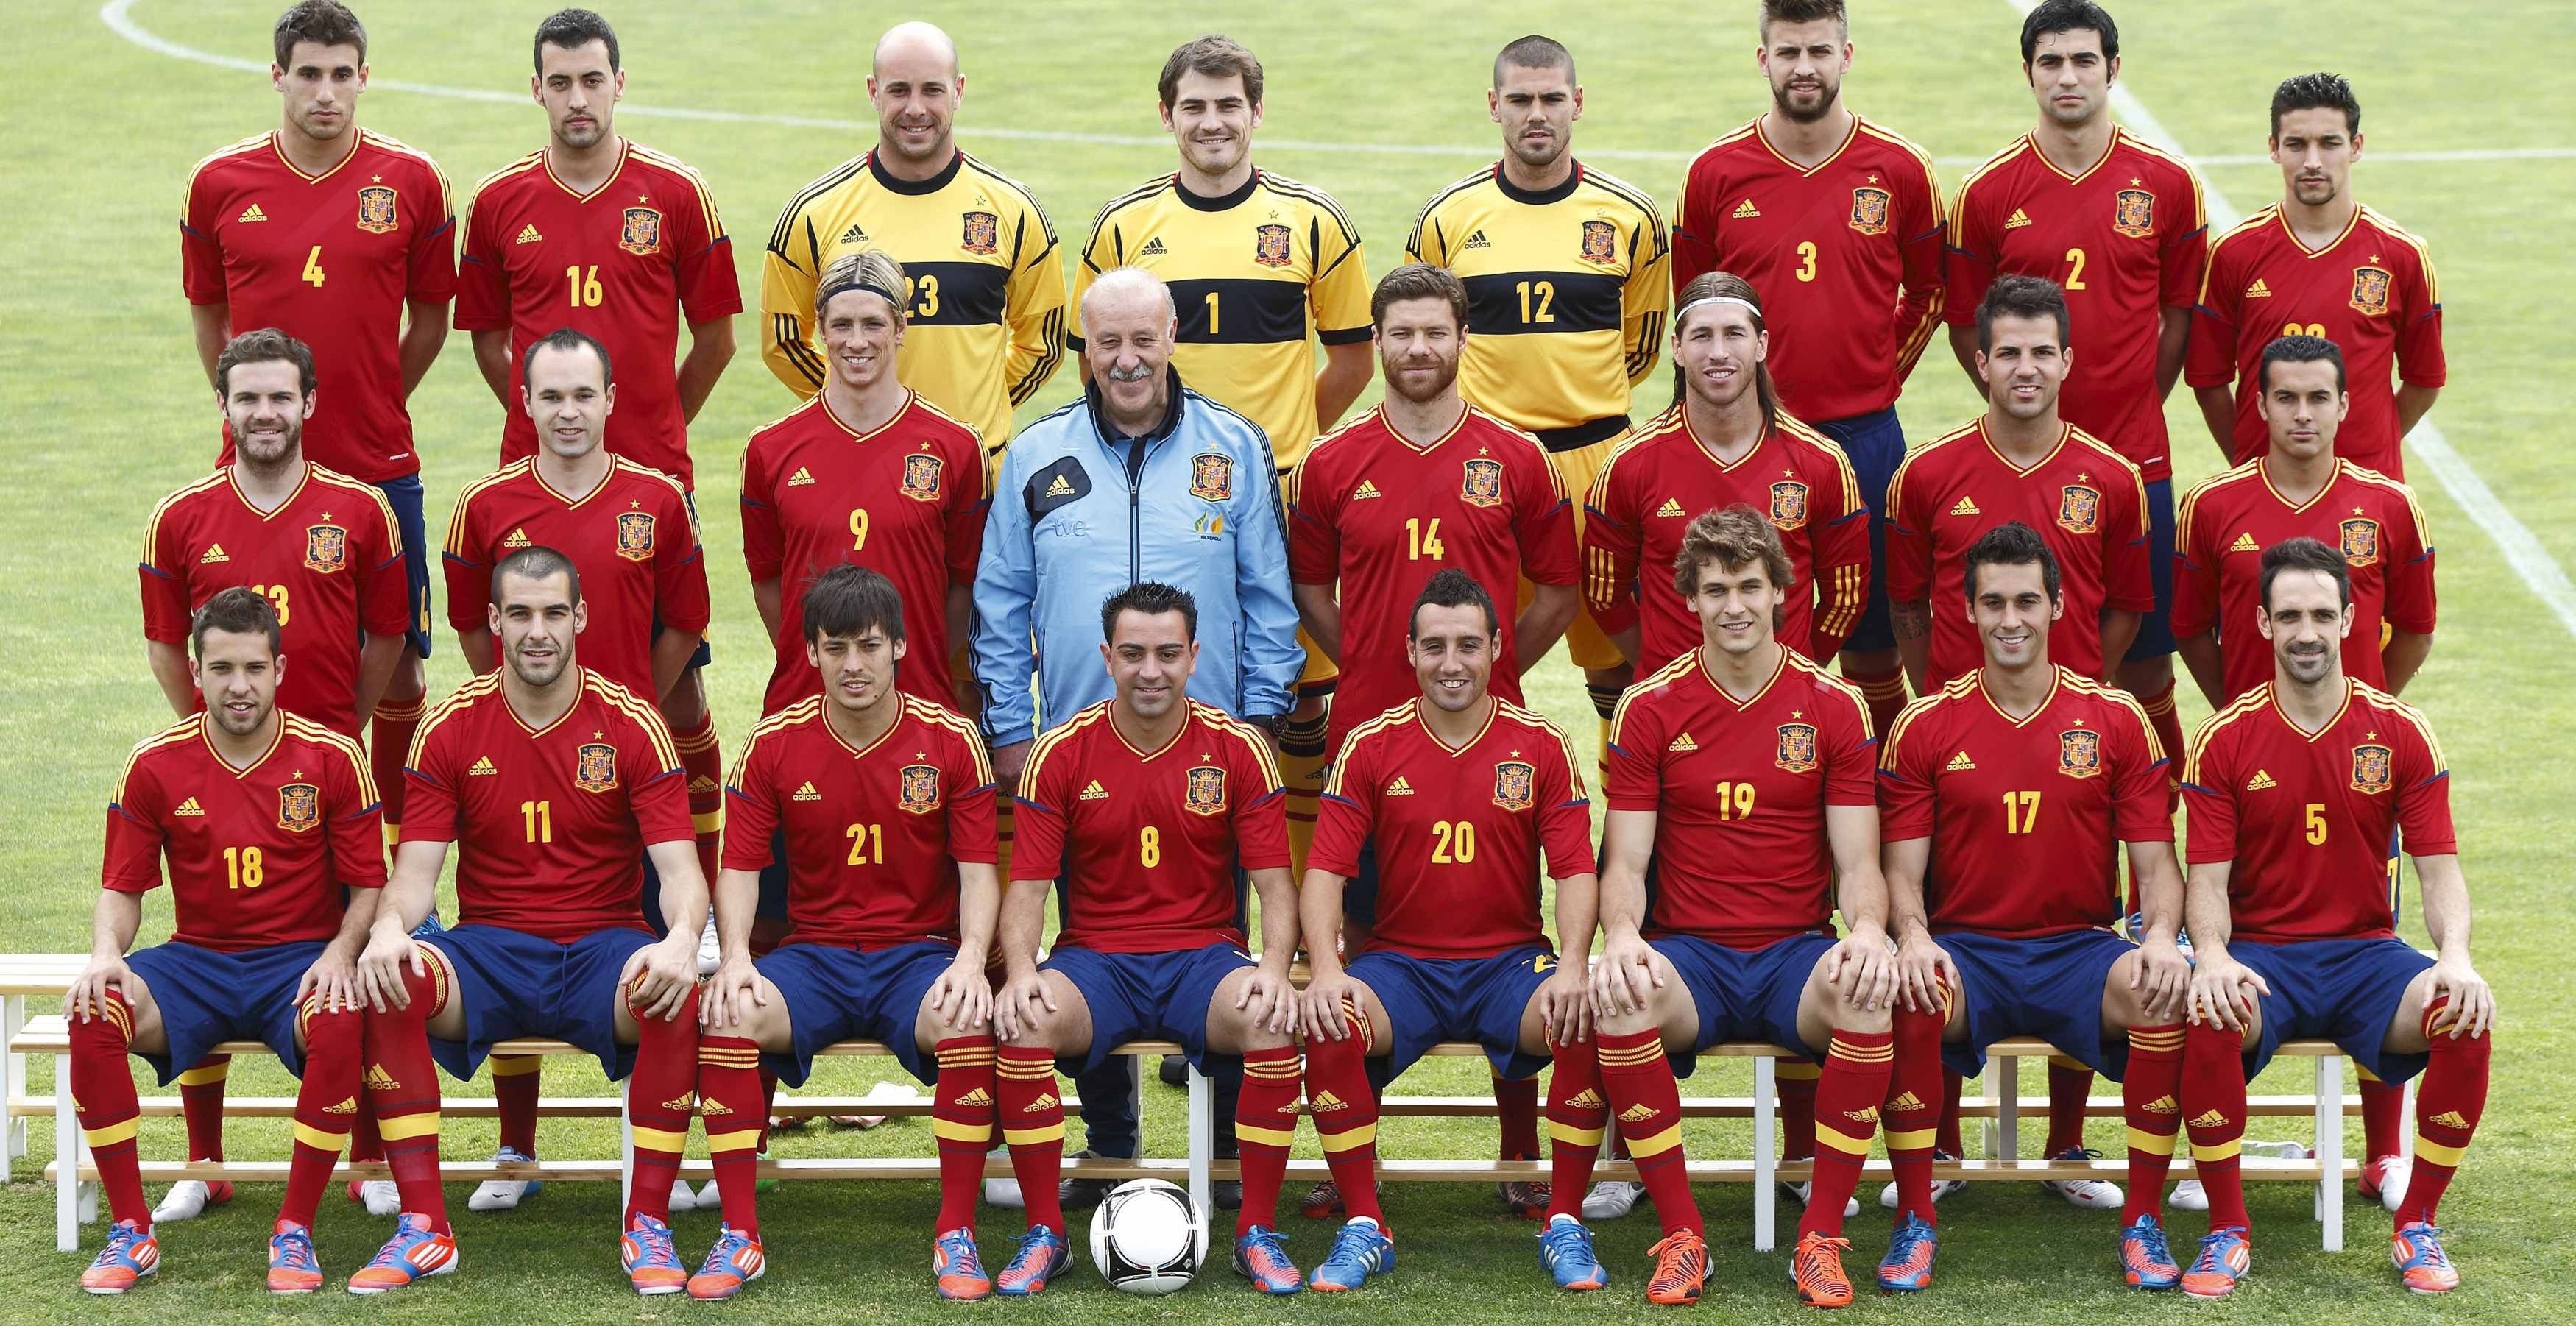 Spanish national soccer team members pose for official picture ahead the Euro 2012 championship at Soccer City area in Las Rozas